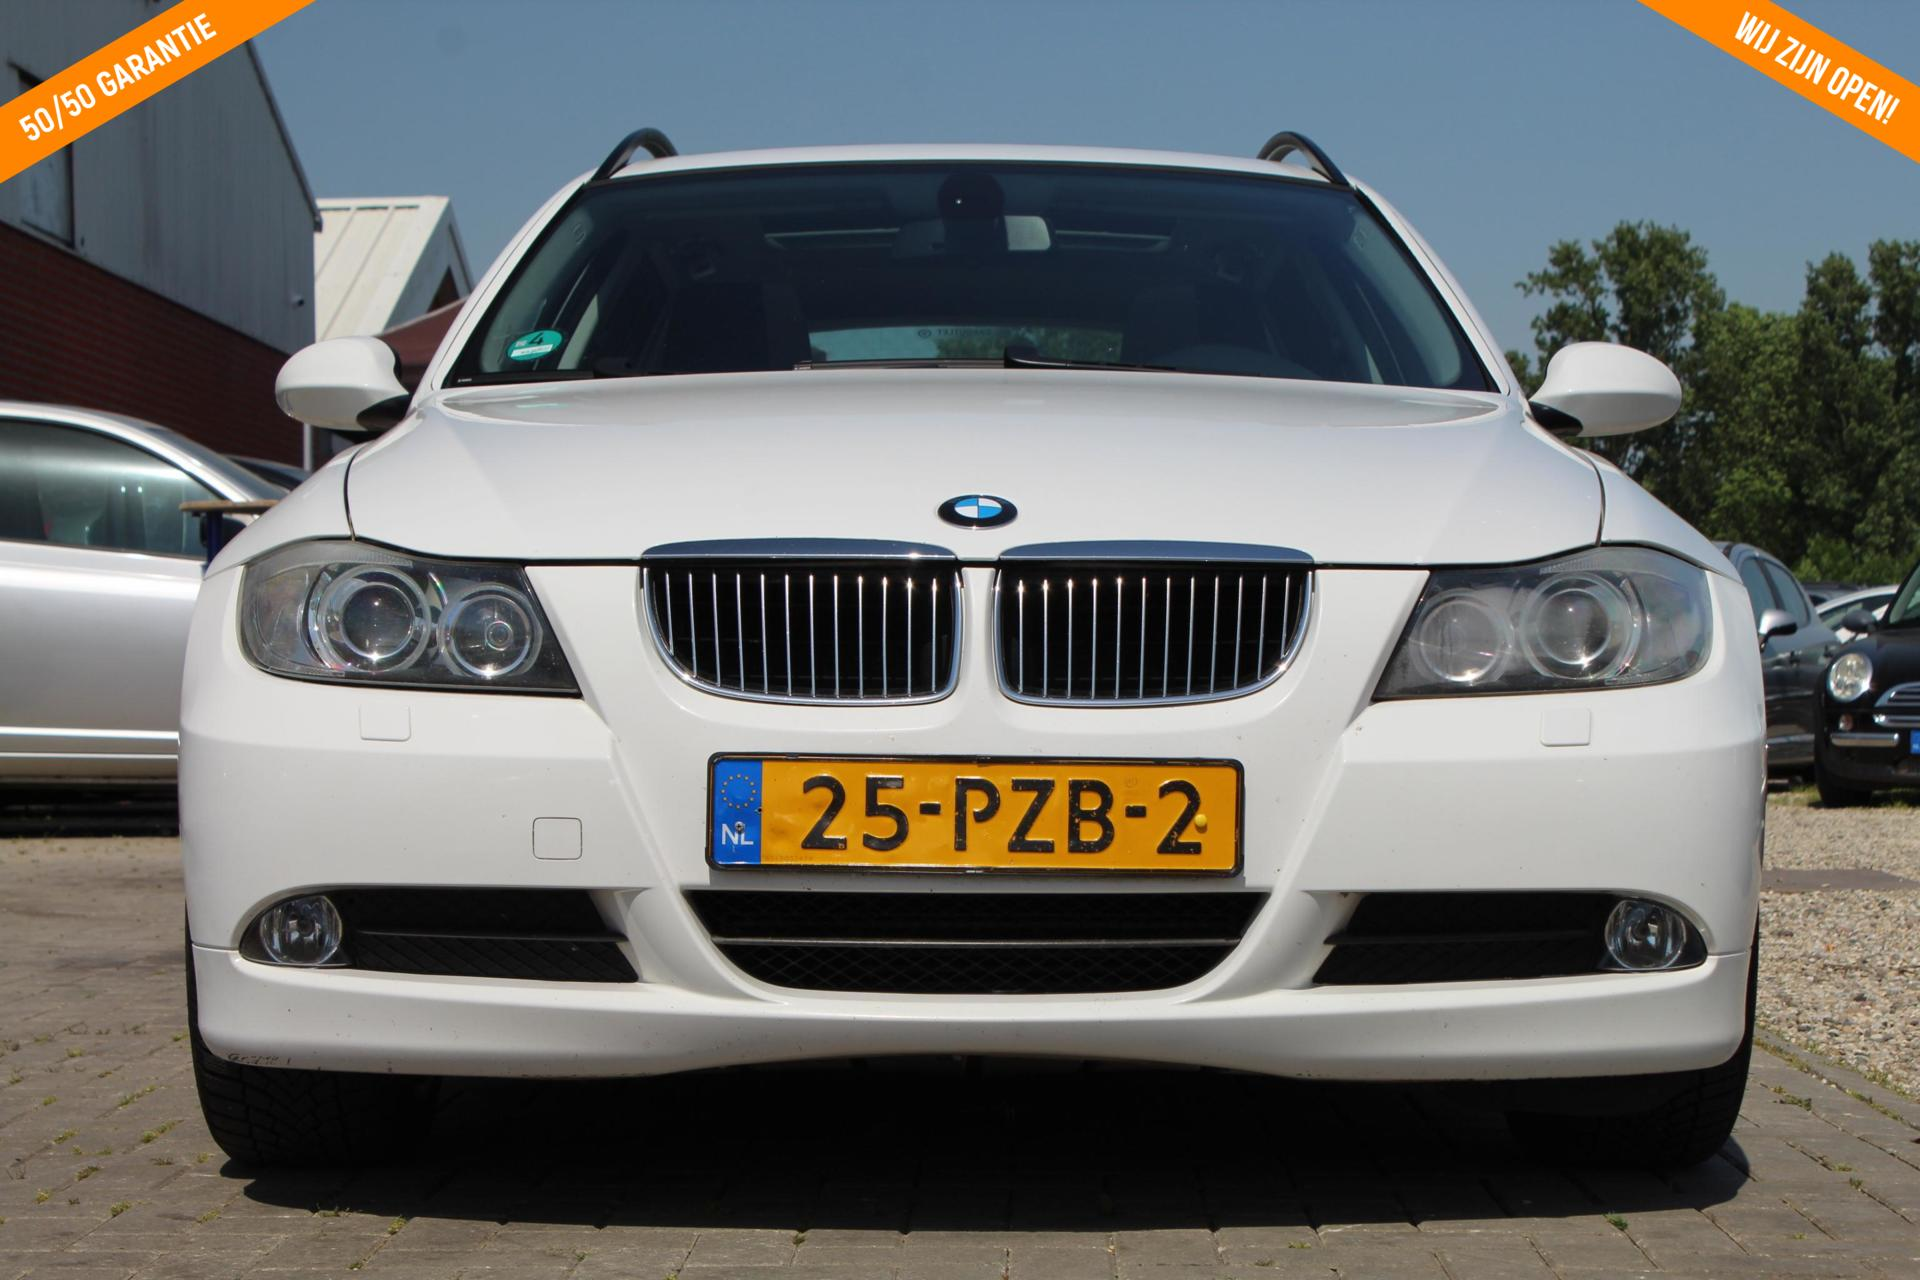 Caroutlet Groningen - BMW 3-serie Touring 325d | CLIMA | NAVI  | CRUISE | PANO